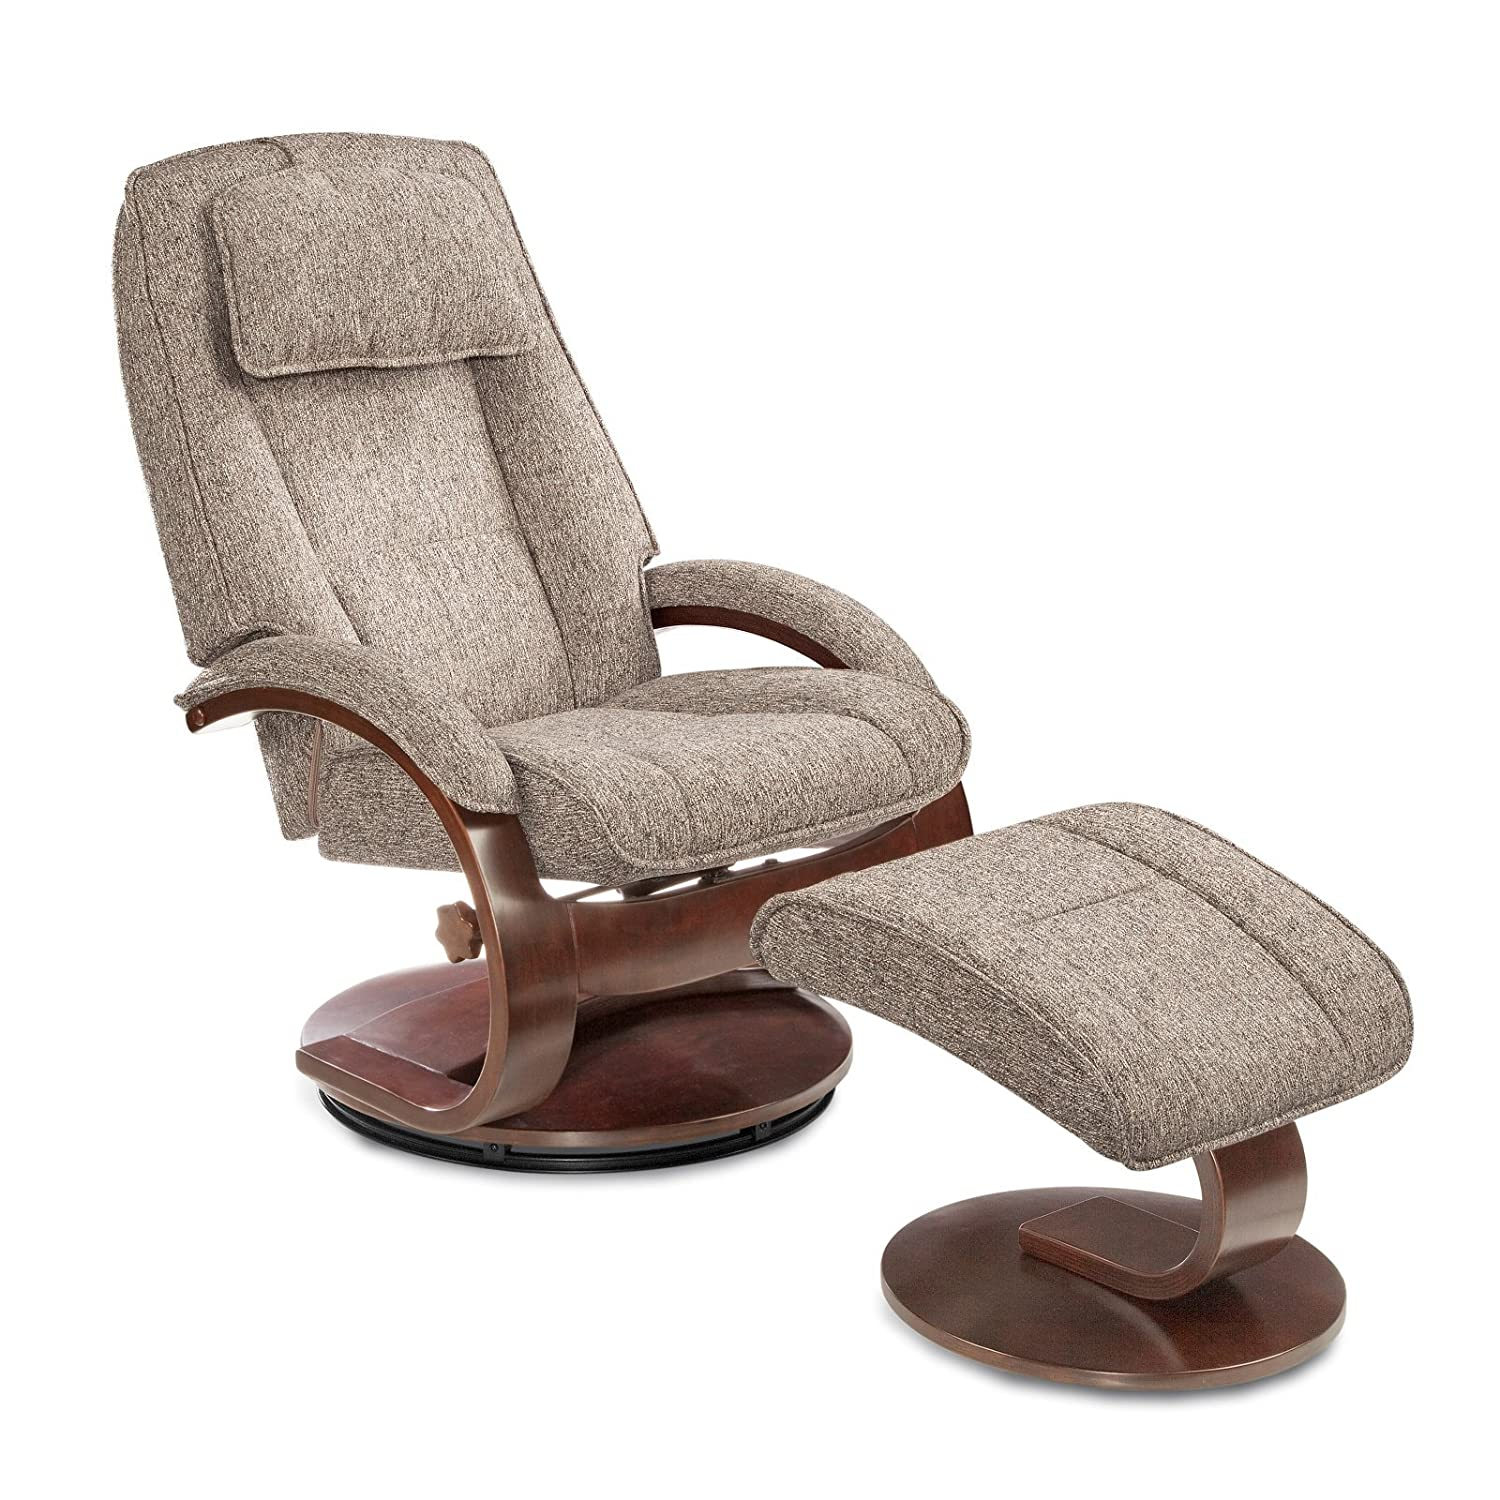 Amazon Teatro Fabric Recliner with Ottoman in Tan Kitchen